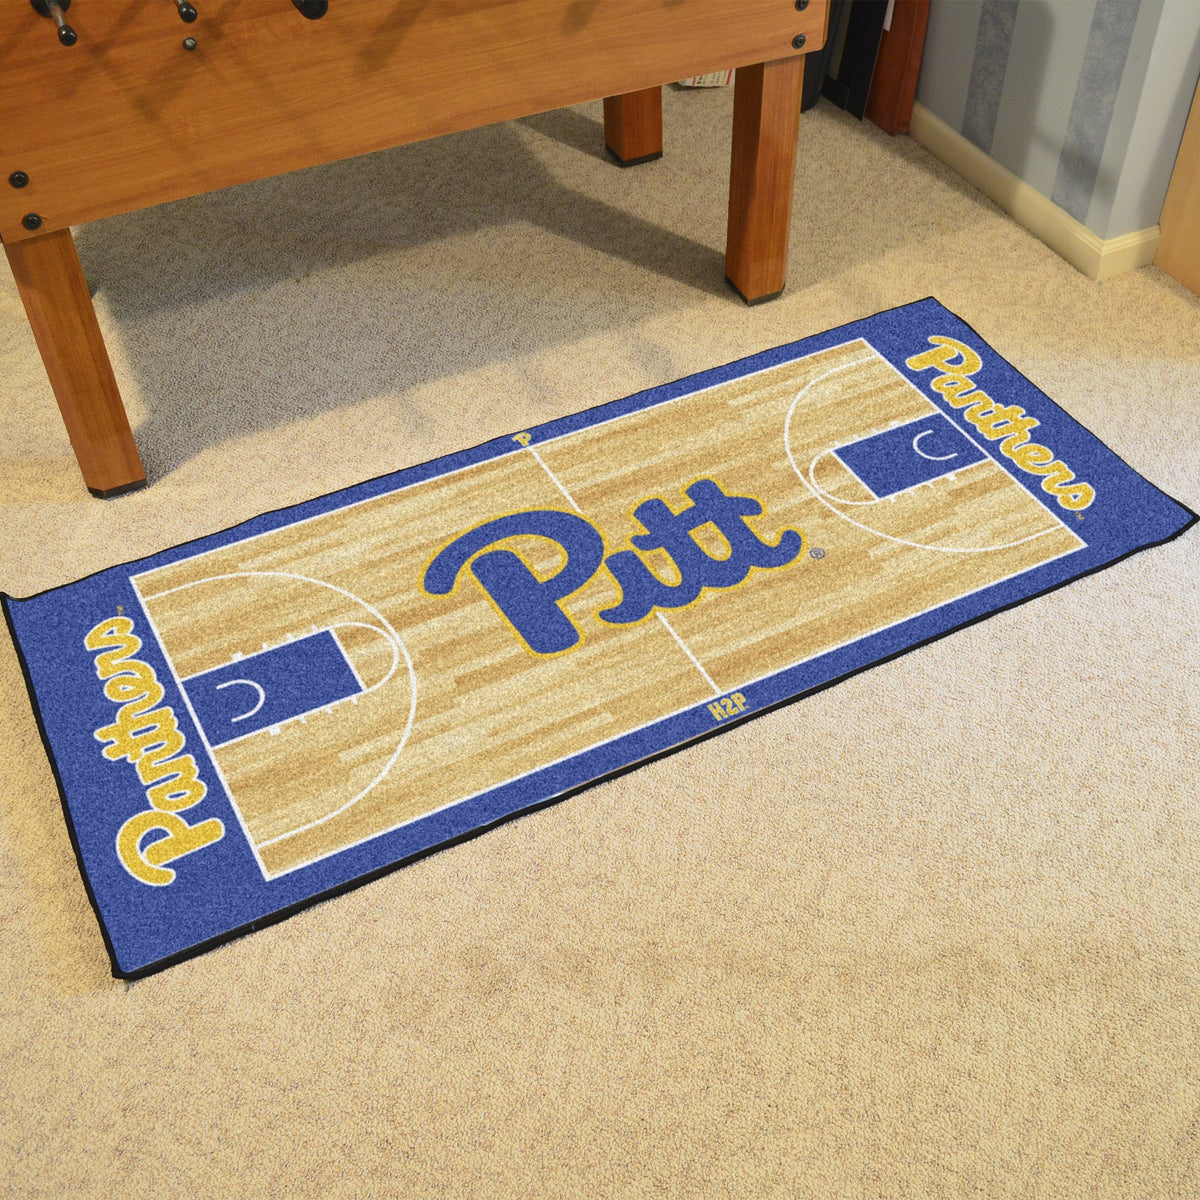 Collegiate - NCAA Basketball Runner Collegiate Mats, Rectangular Mats, NCAA Basketball Runner, Collegiate, Home Fan Mats Pitt